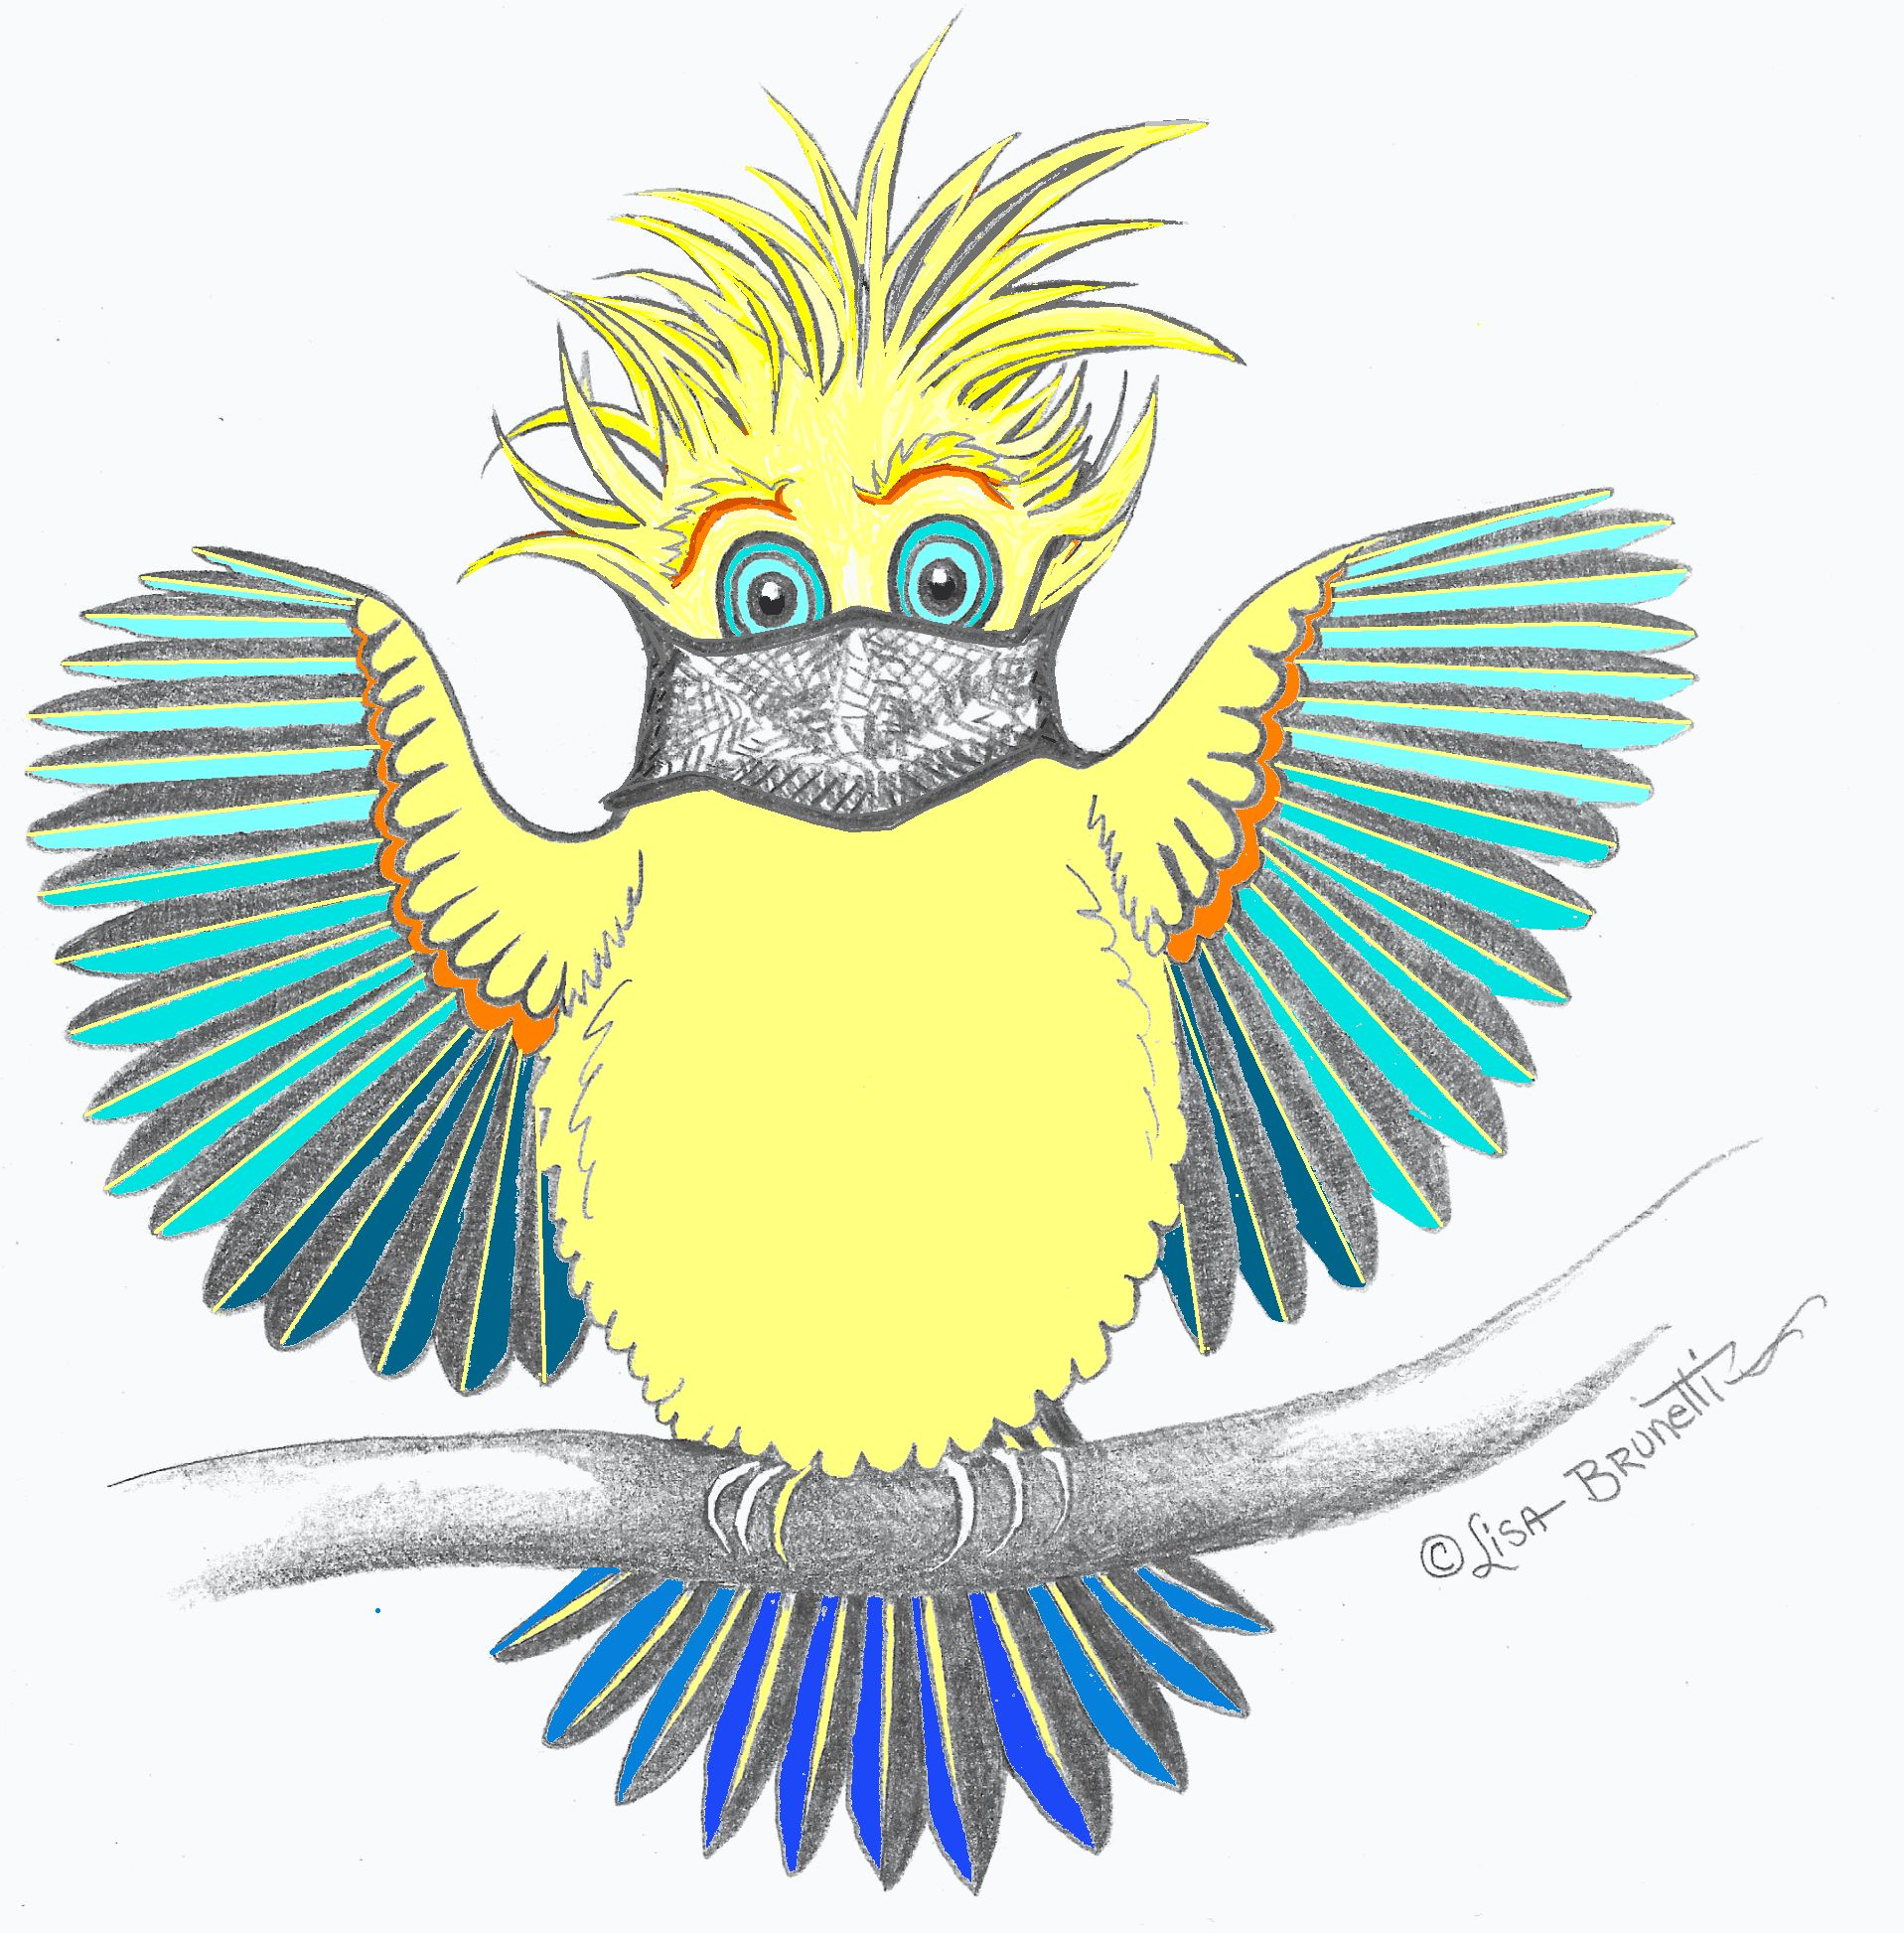 11 FOR POST DAB DAY CORONA MASKED BIRD W COLORS 2